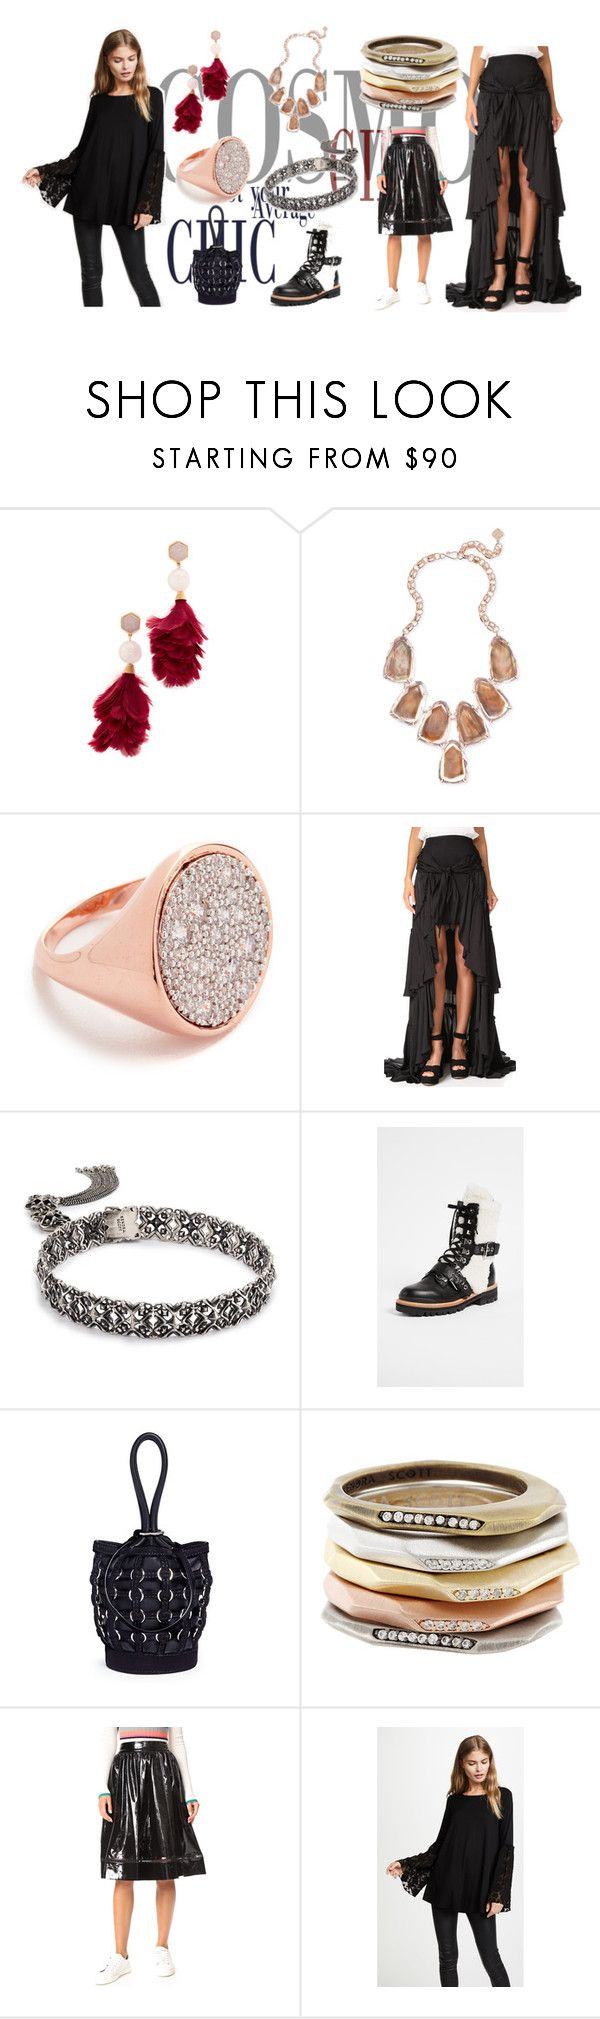 """My Style .. My Way"" by justinallison ❤ liked on Polyvore featuring Tory Burch, Kendra Scott, Bronzallure, Cinq à Sept, Sigerson Morrison, Alexander Wang, Alice + Olivia and Three Dots"